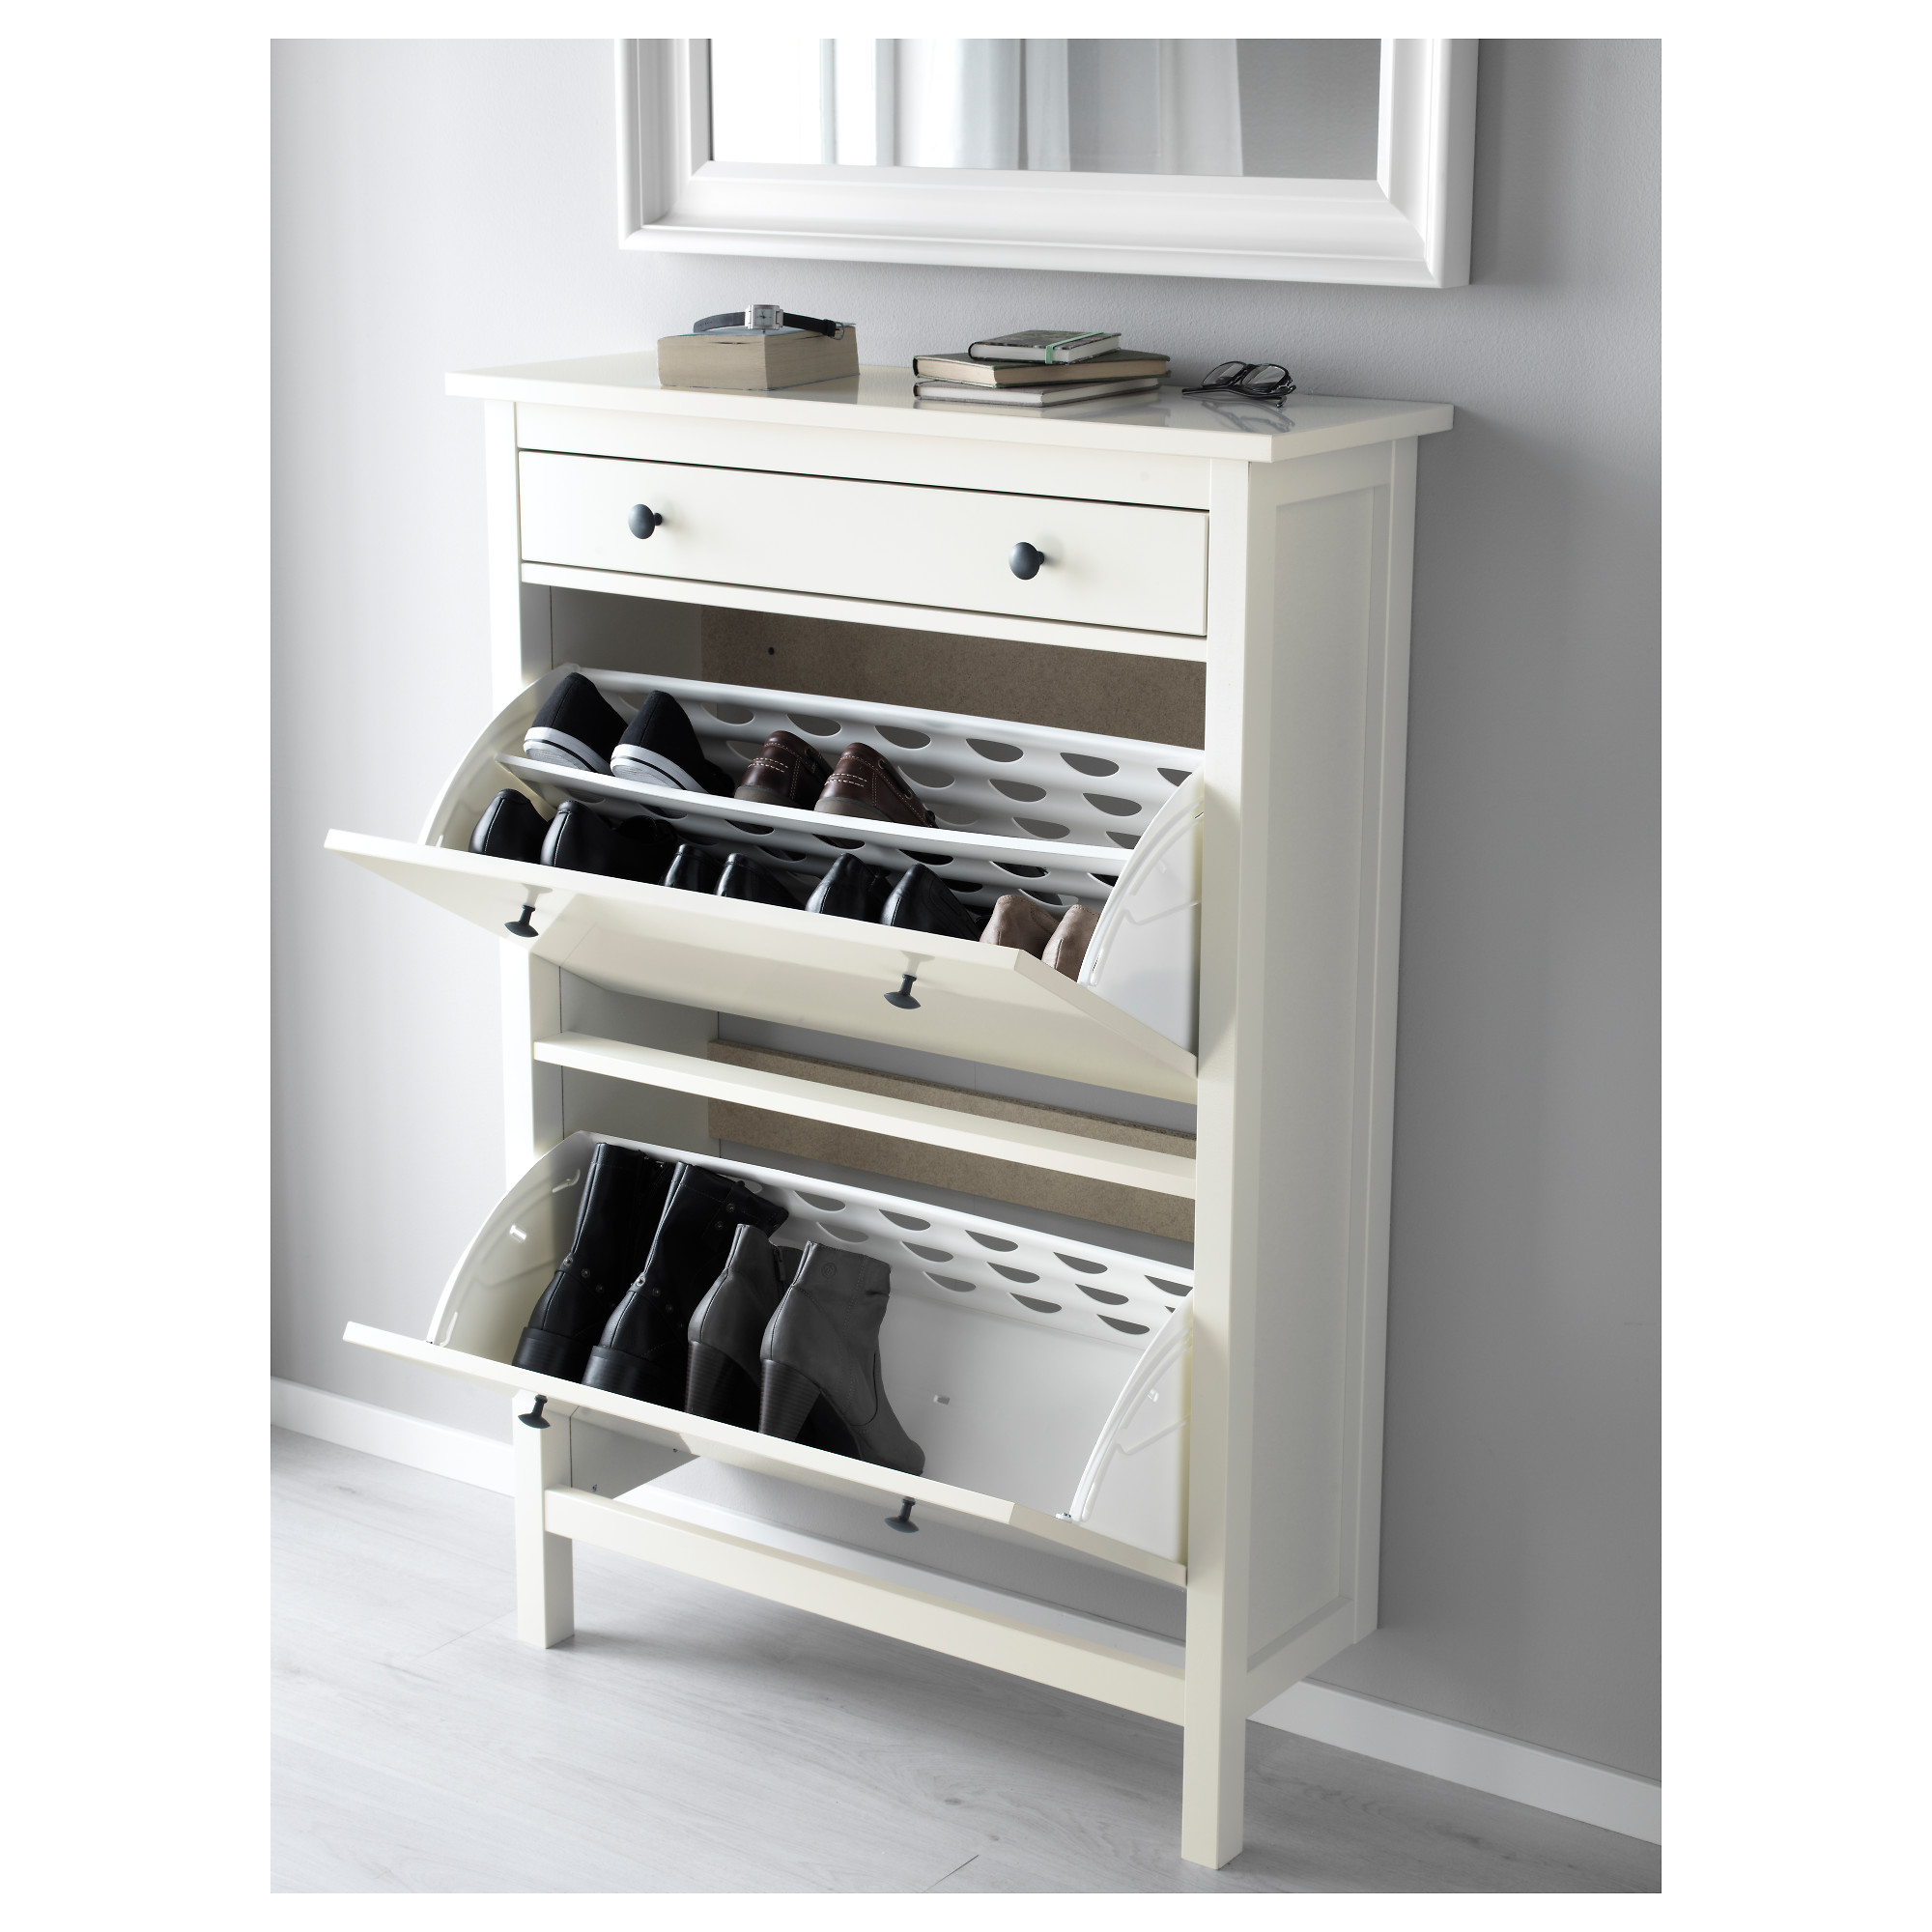 Design Ikea Shoe Storage hemnes shoe cabinet with 2 compartments white ikea